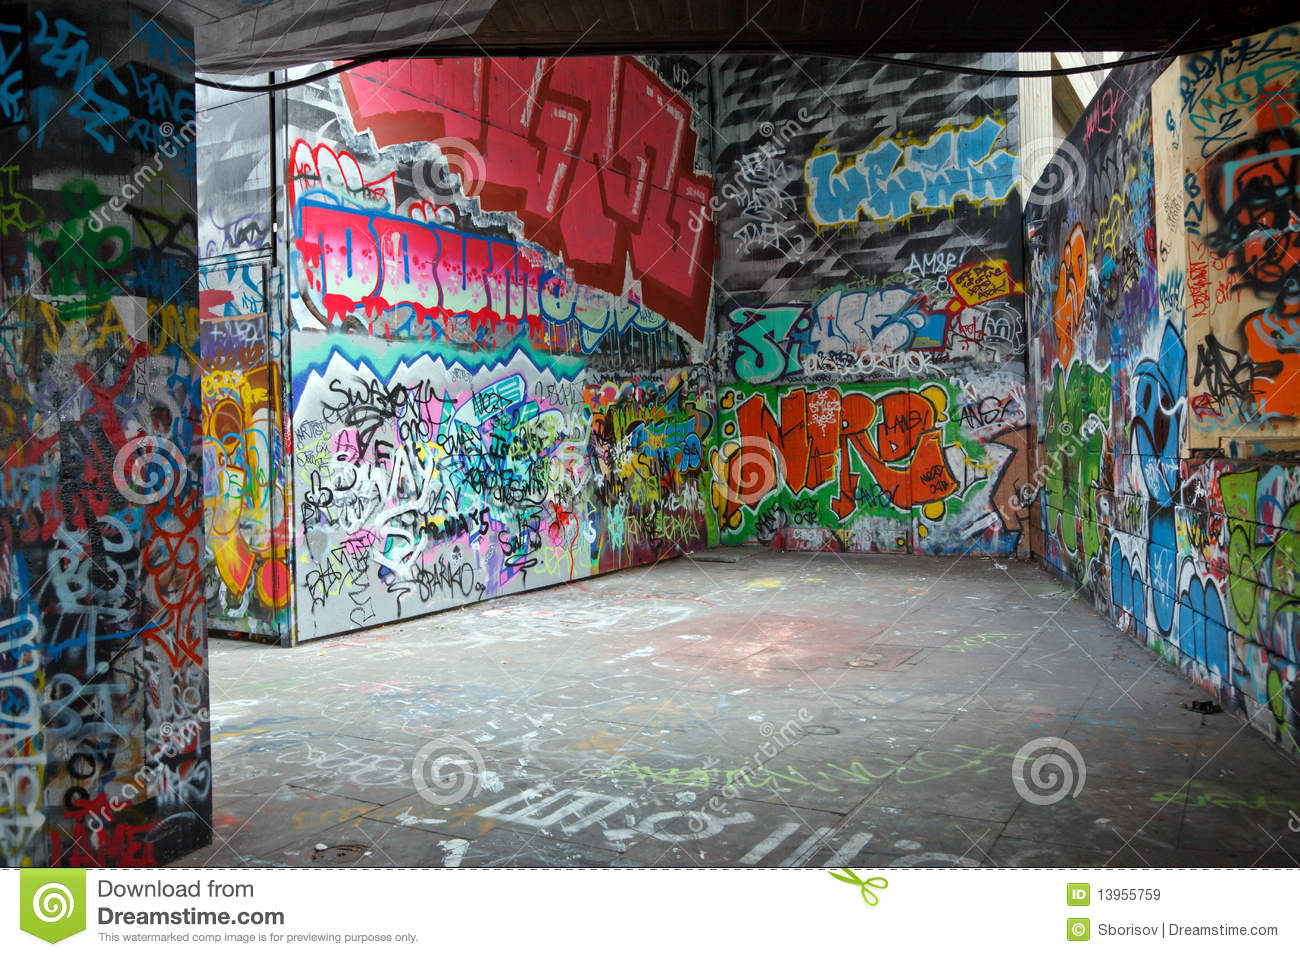 What Is An Asbo >> Colorful graffiti stock image. Image of asbo, graffiti - 13955759